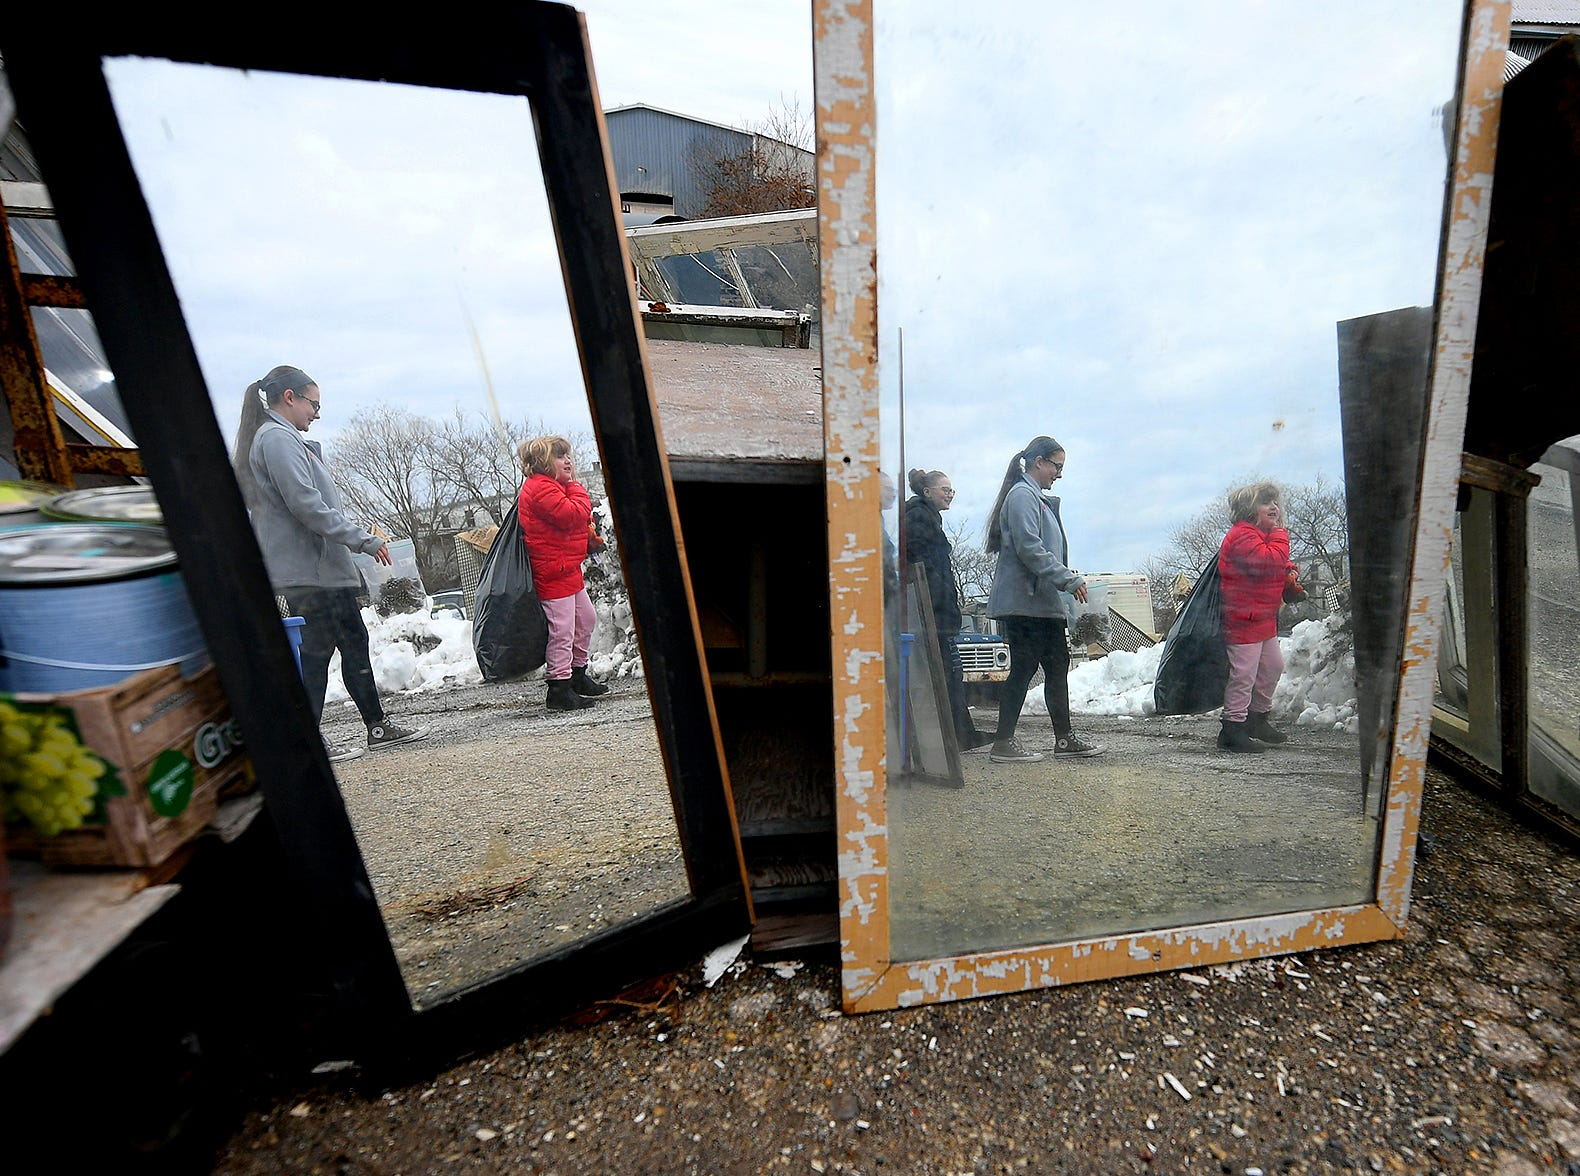 Central High School sophomores, from left, Lea Wilhelm, Emma Crumling and Lea's sister Brynlee Dietrich are reflected in vintage mirrors while choosing items for the sophomore entry in the York County Solid Waste Authority Recycled Art Contest during Picker Day at the architectural salvage warehouse Refindings in York City Saturday, Feb. 23, 2019. The waste authority is sponsoring the fifth annual contest for York County high school students to promote recycling and celebrate Earth Day. Students create sculptures by mid-April from the materials donated by Refindings and the contest exhibit will be on display in the Marketview Arts Gallery, 37 W. Philadelphia St., beginning Sunday, April 14. Contest winners will be announced there during an awards event April 18. Bill Kalina photos